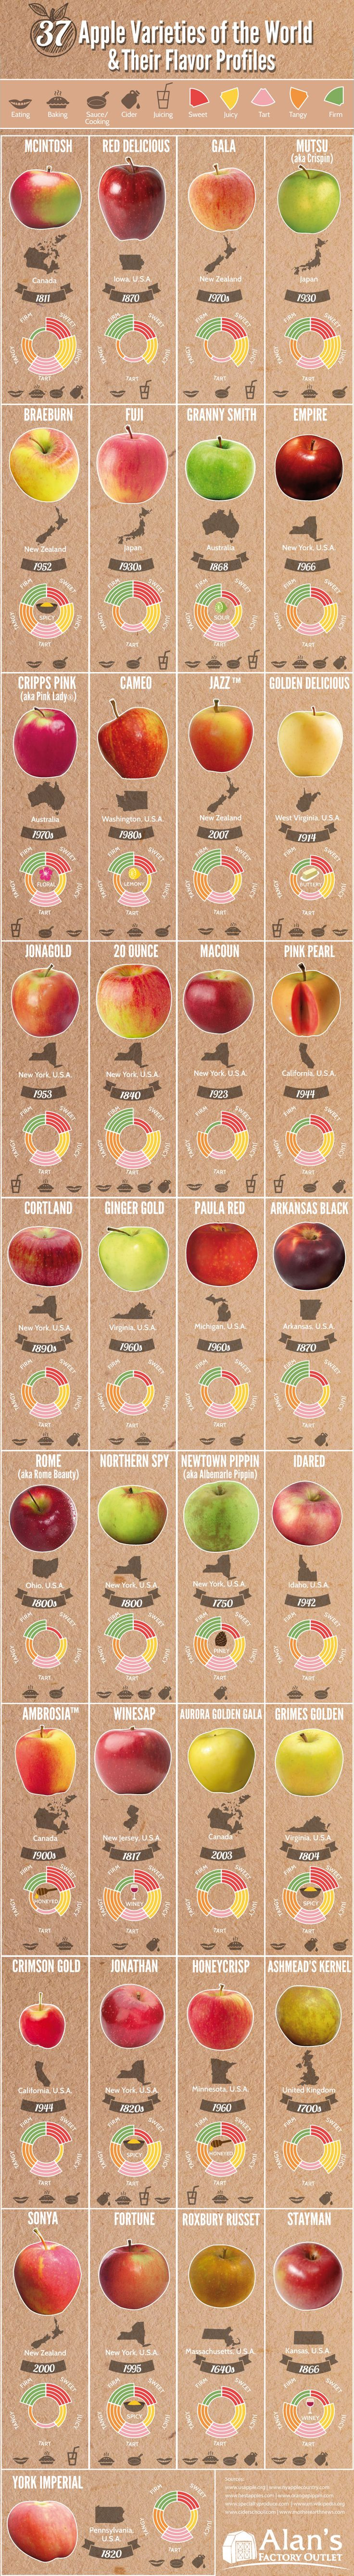 37 apple varieties from around the world and what they taste like. - Imgur